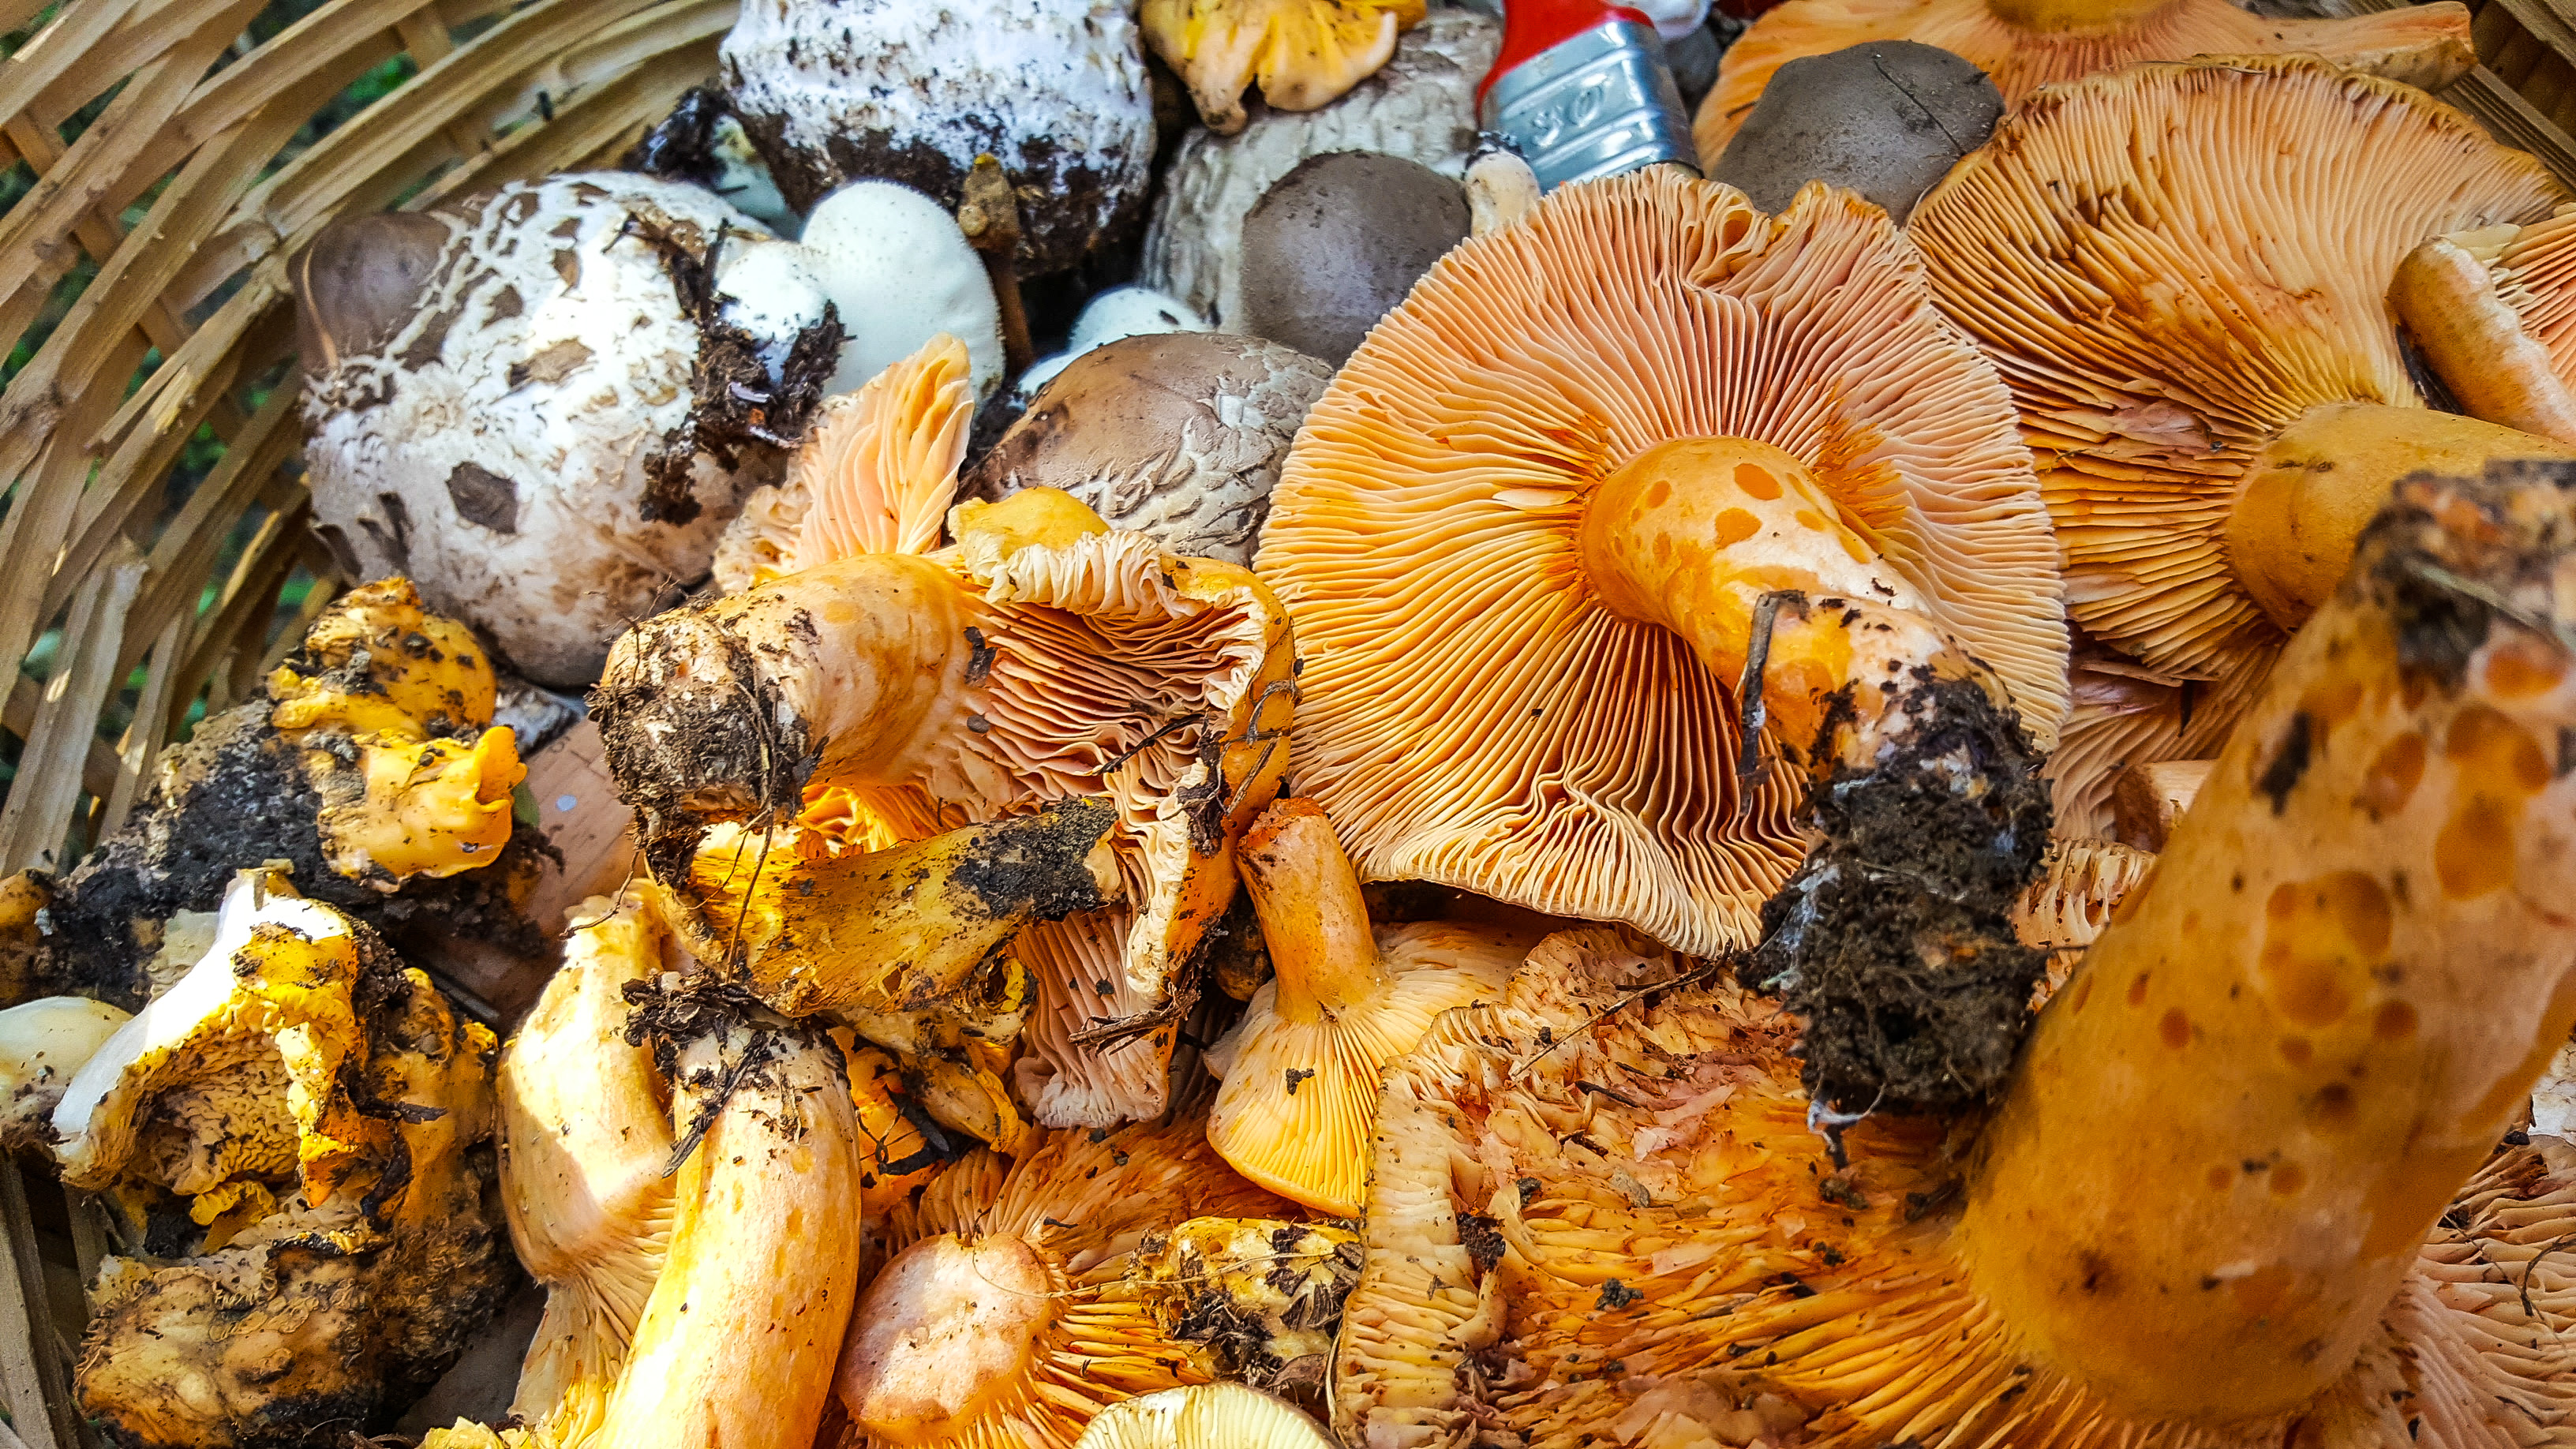 Greece, basket, abundance, yellow, autumn, colors, mushrooms